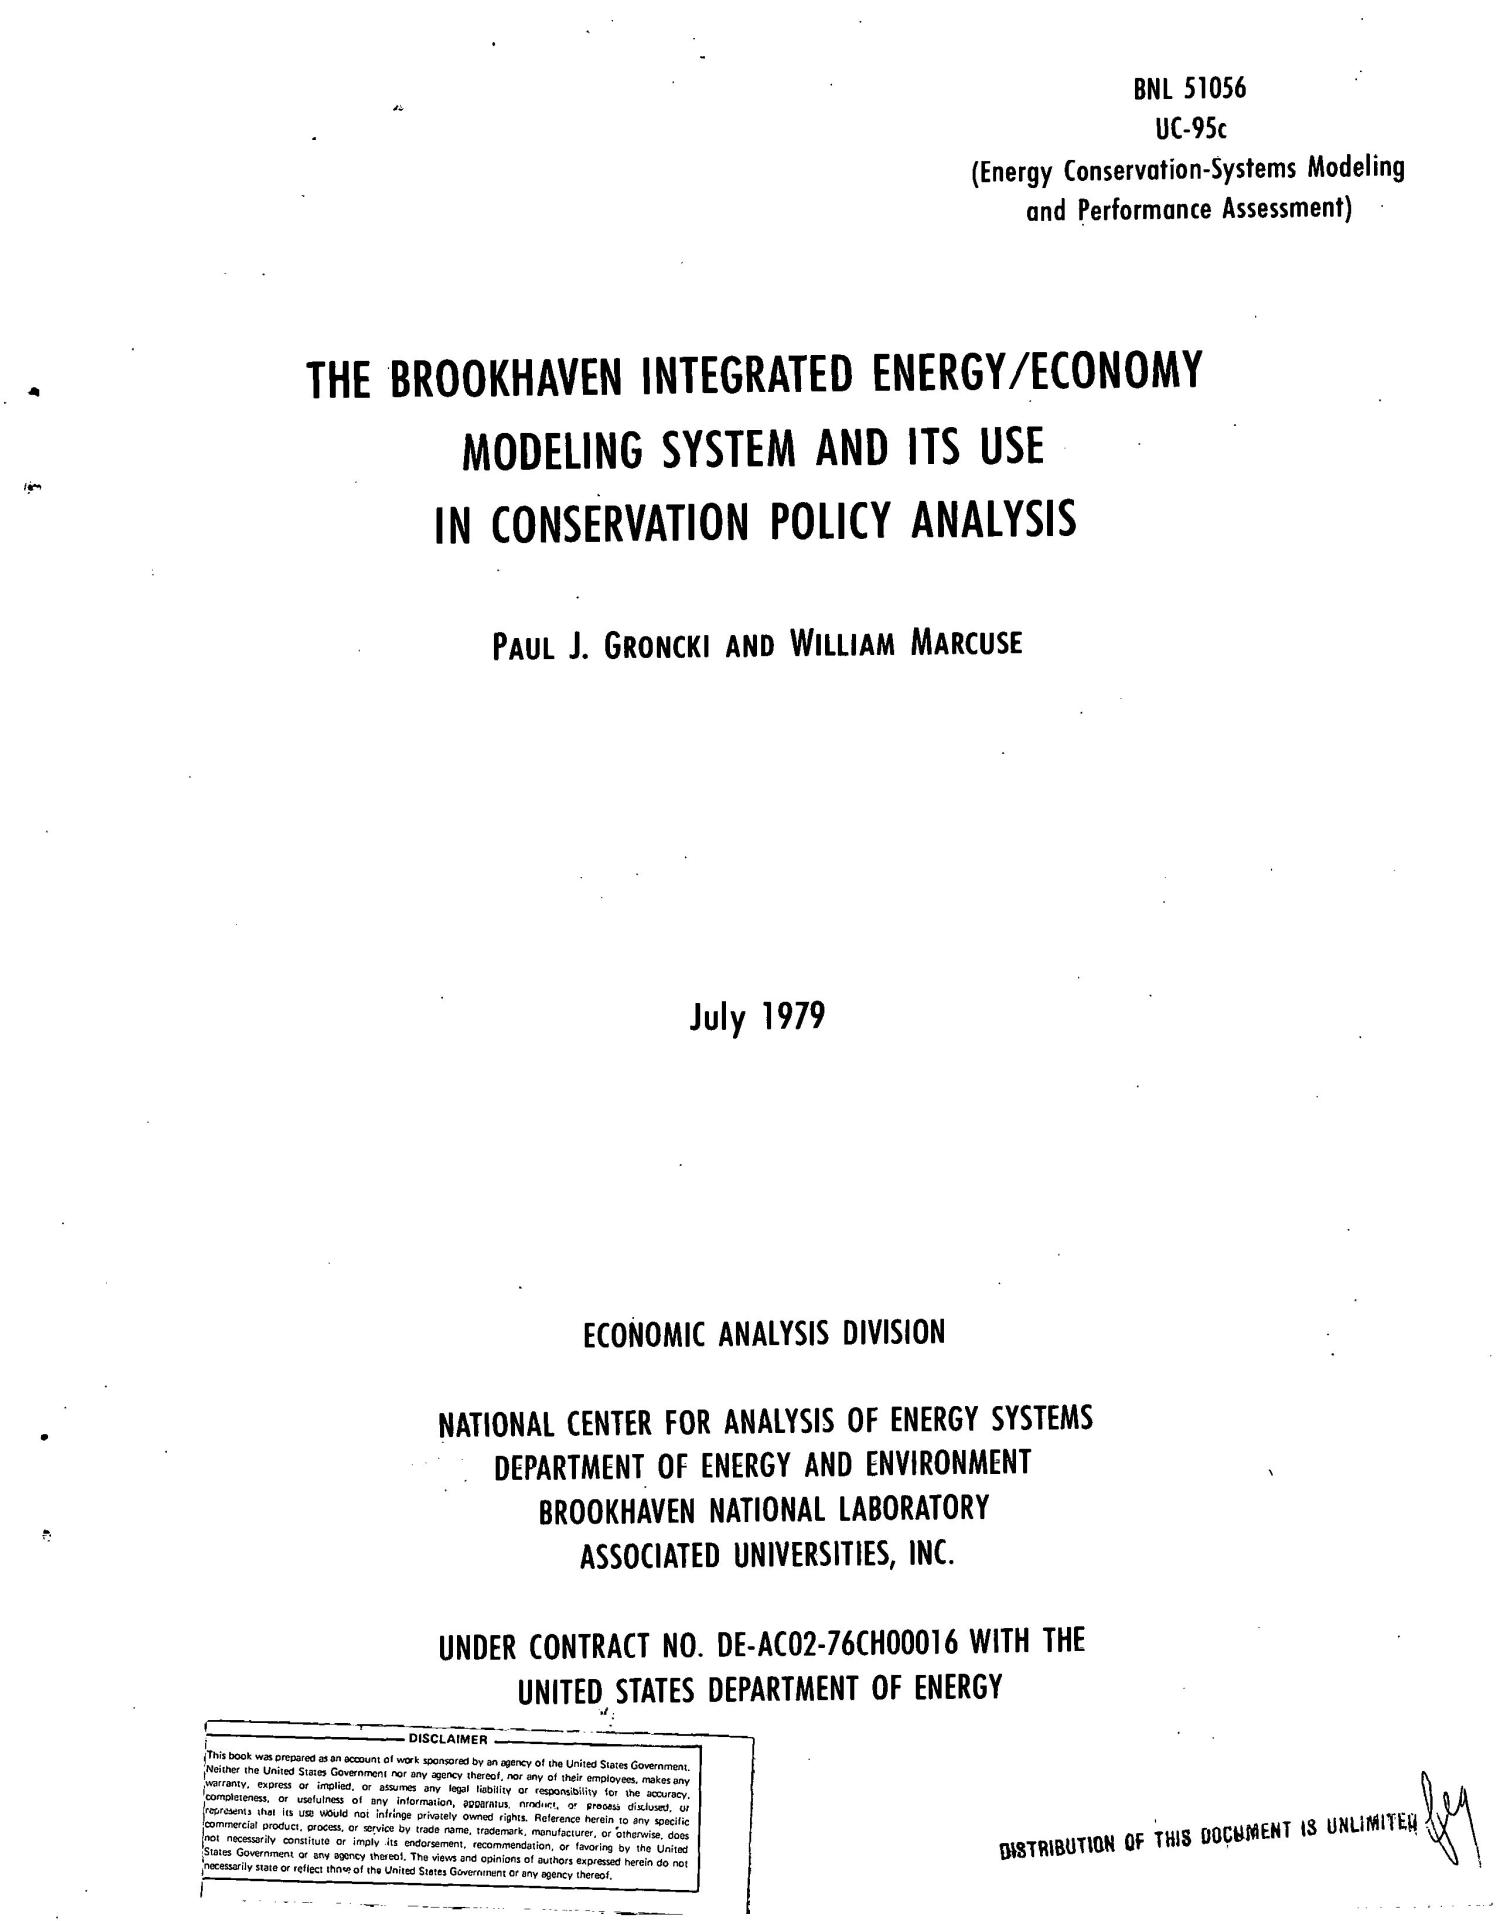 Brookhaven integrated energy/economy modeling system and its use in conservation policy analysis                                                                                                      [Sequence #]: 4 of 39